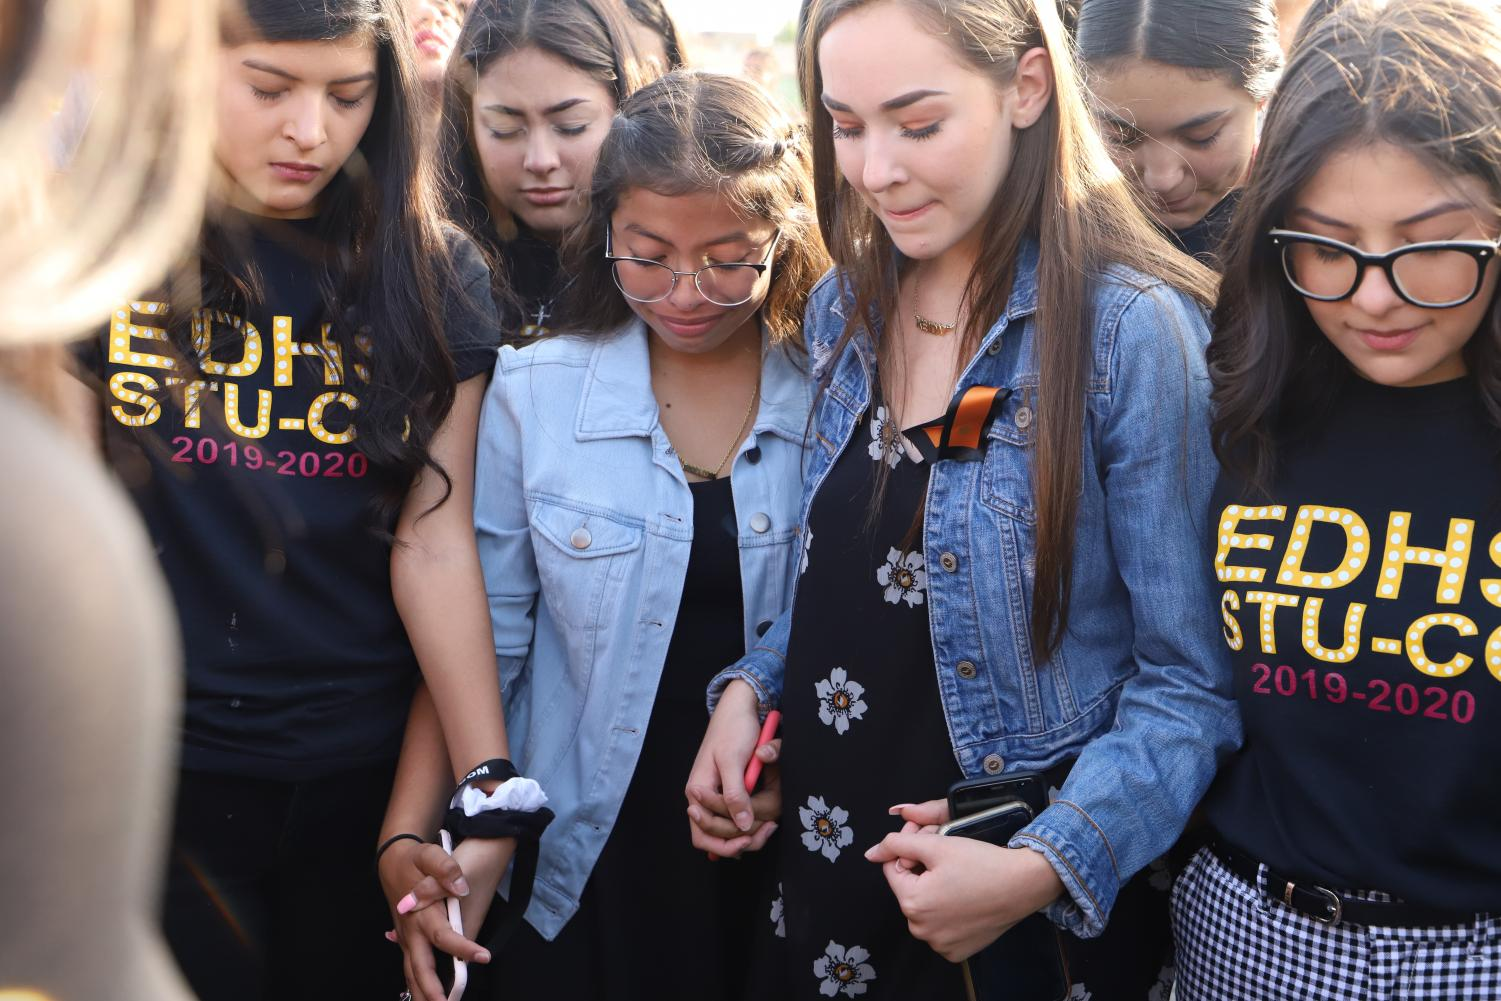 Evany Ramirez, 10, cries with classmates as they say a prayer with presidential candidate Beto O'Rourke (D).